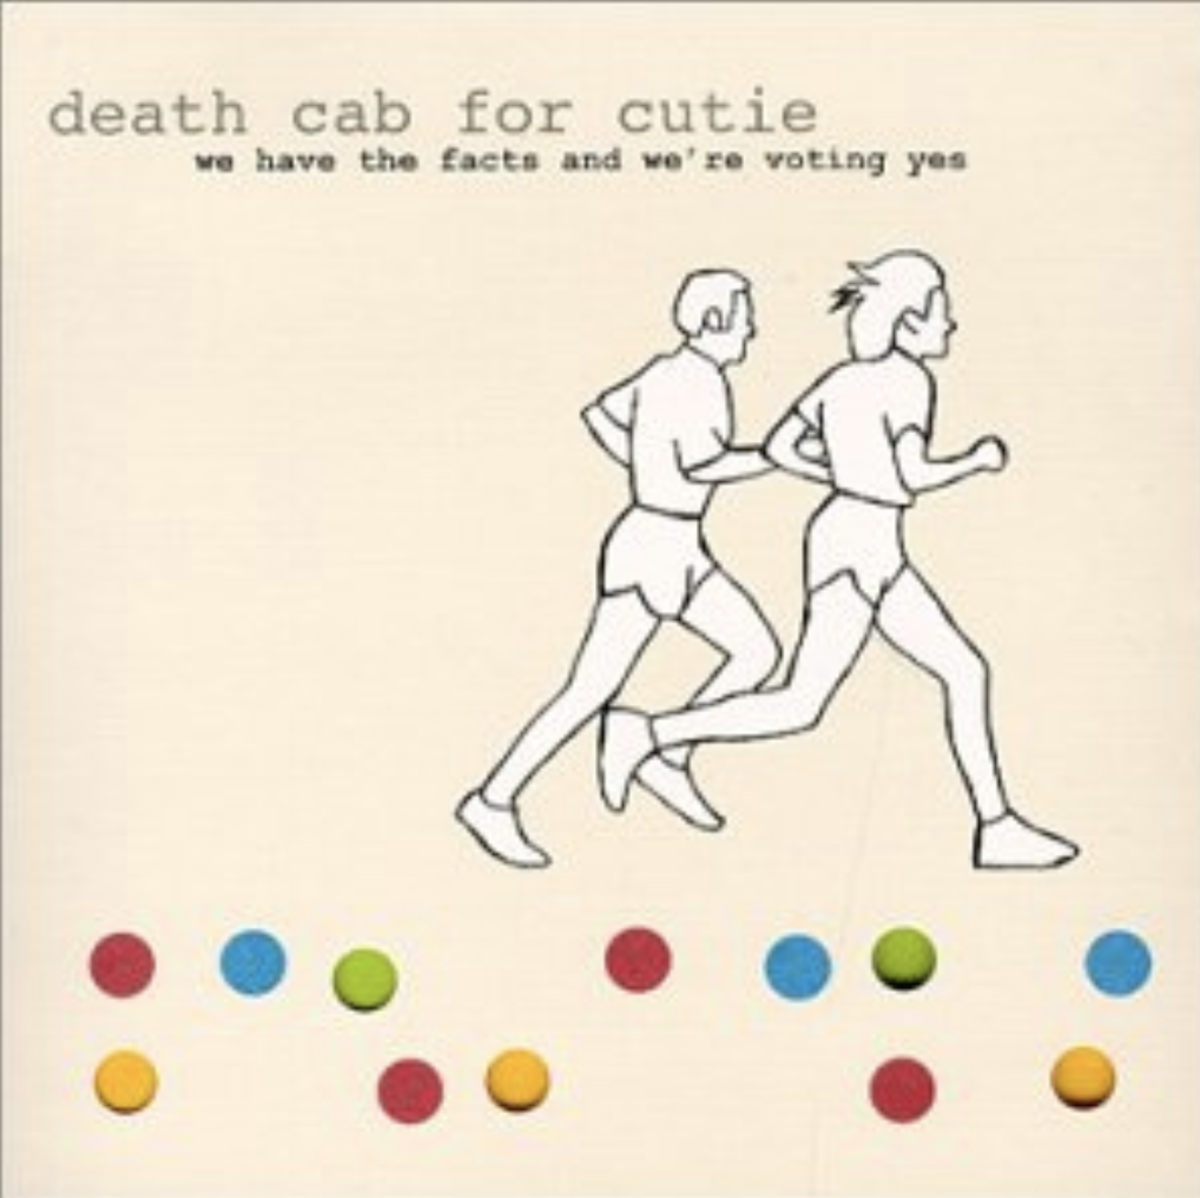 death-cab-for-cutie-albums-ranked-worst-to-best